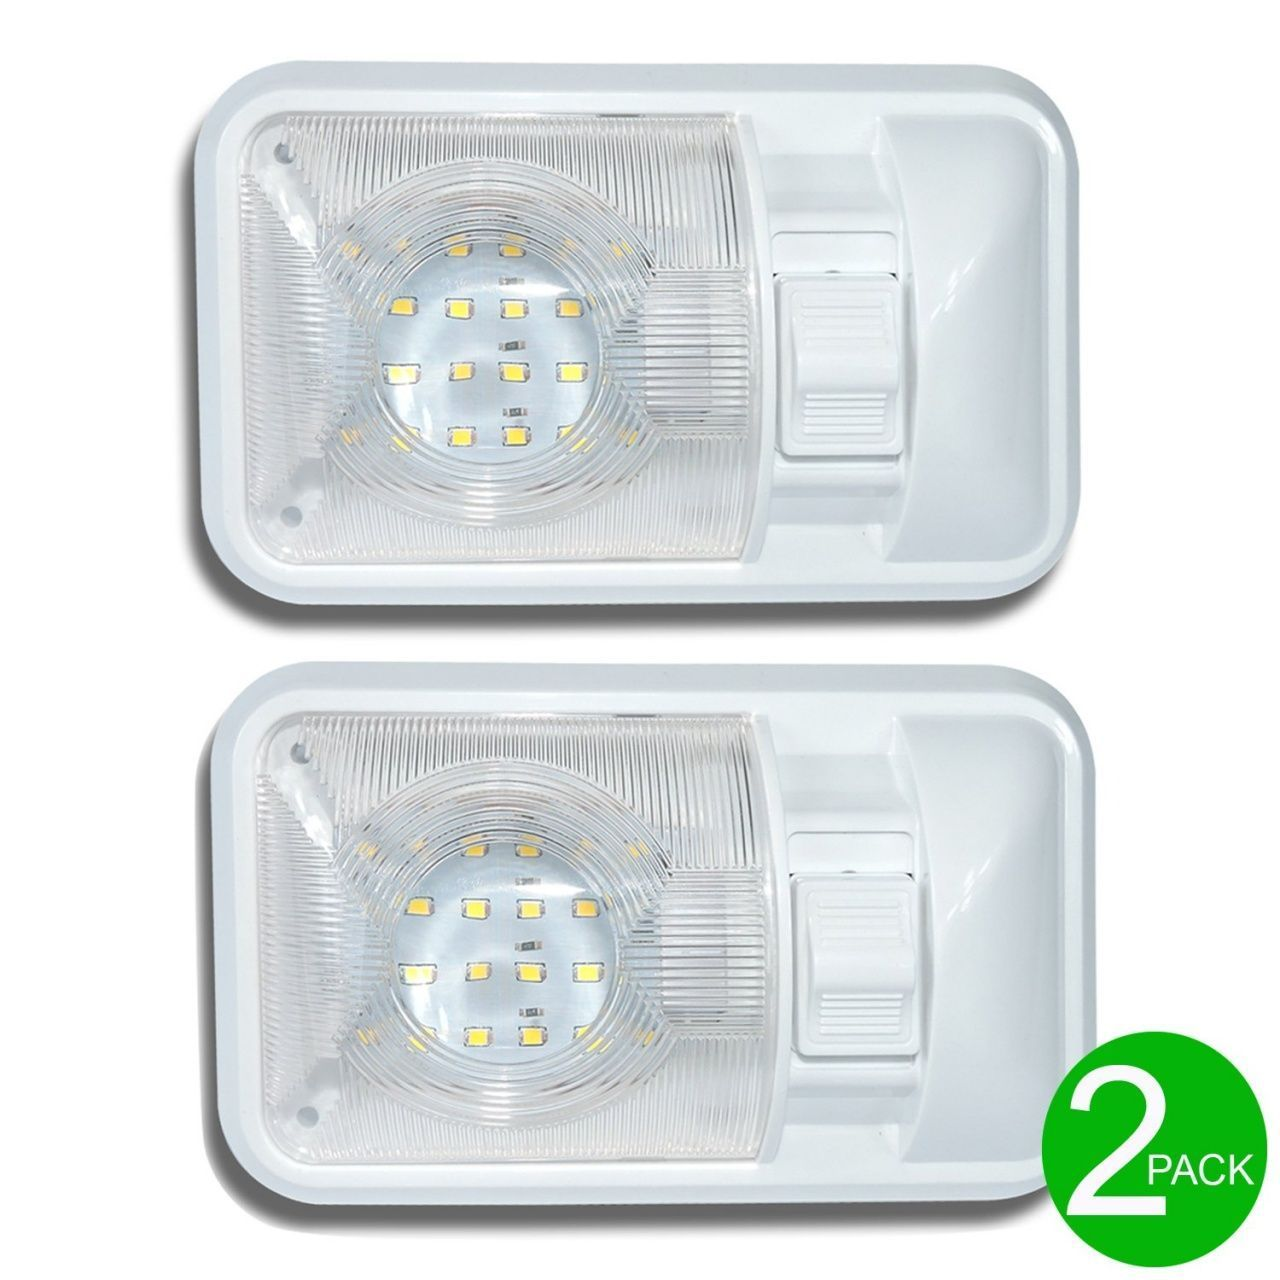 12 Volt Led Rv Porch Lights Led Lights Porch Volt Led Lights Lightsled Porch Volt In 2020 Porch Lighting Led Porch Light Rv Led Lights